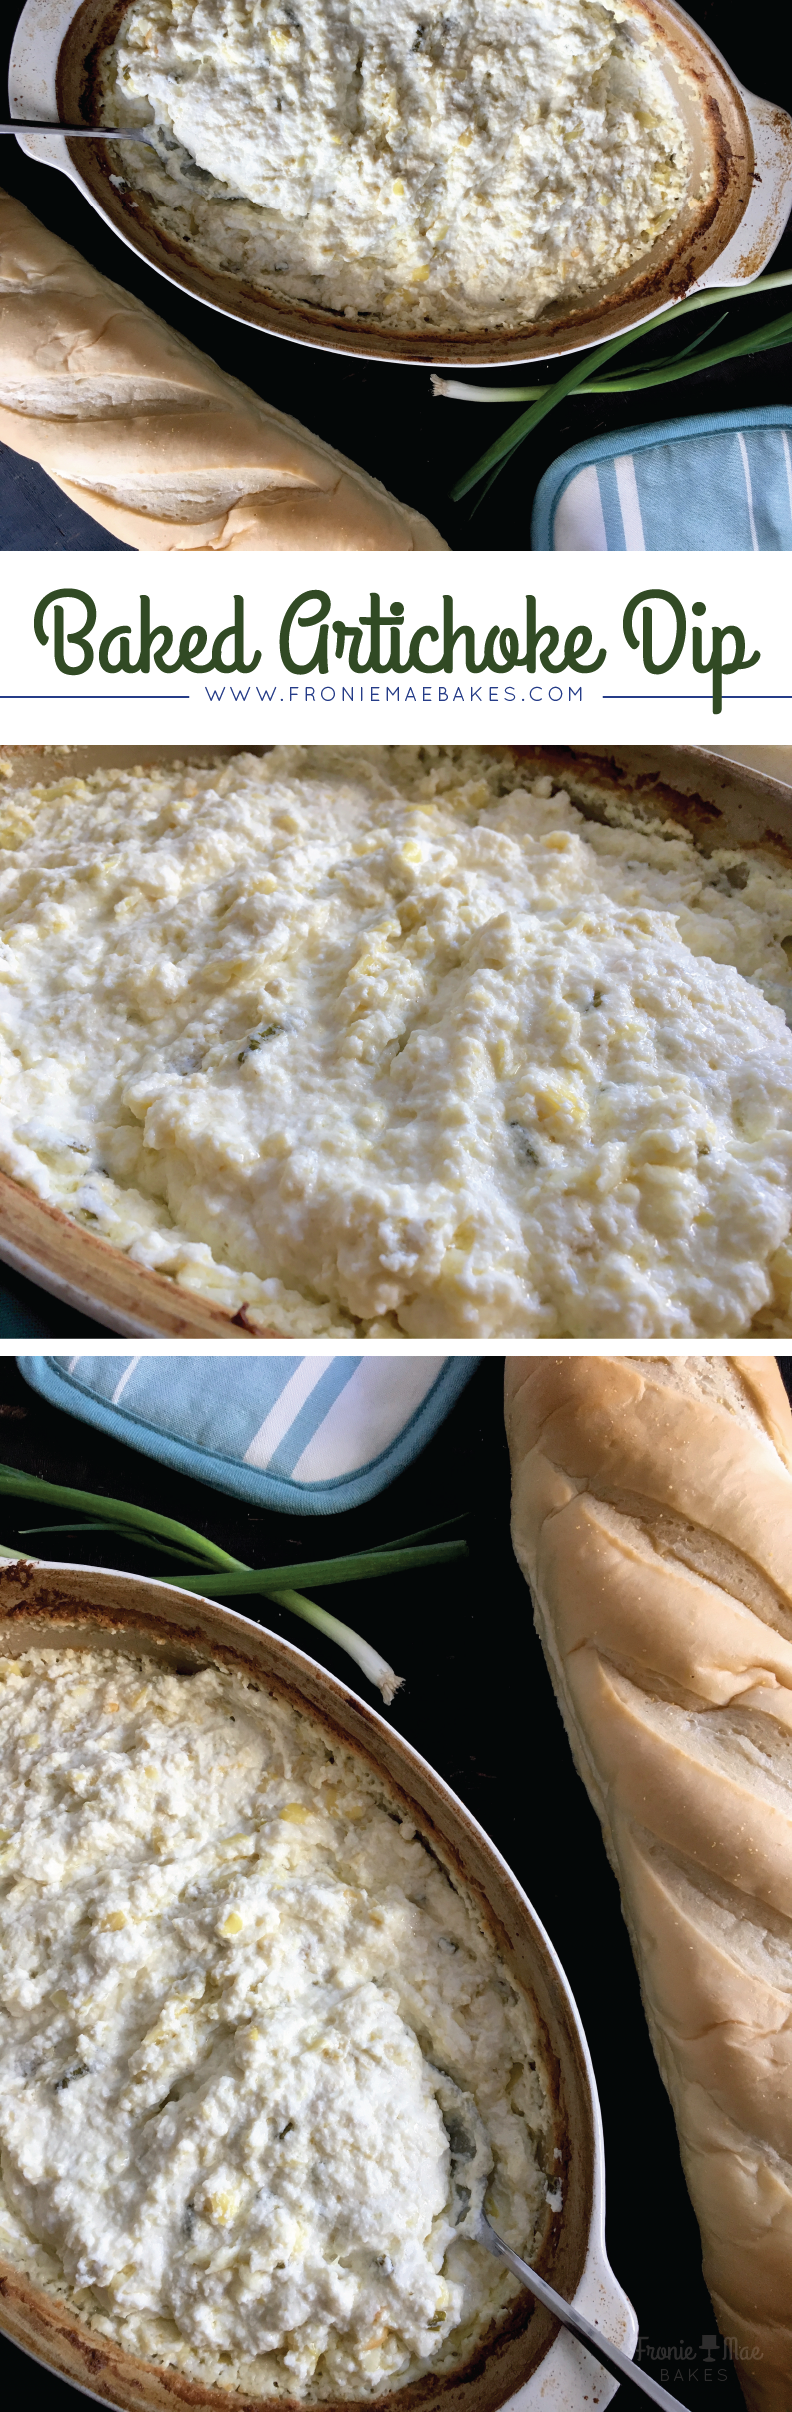 Creamy Baked Artichoke Dip by Fronie Mae Bakes